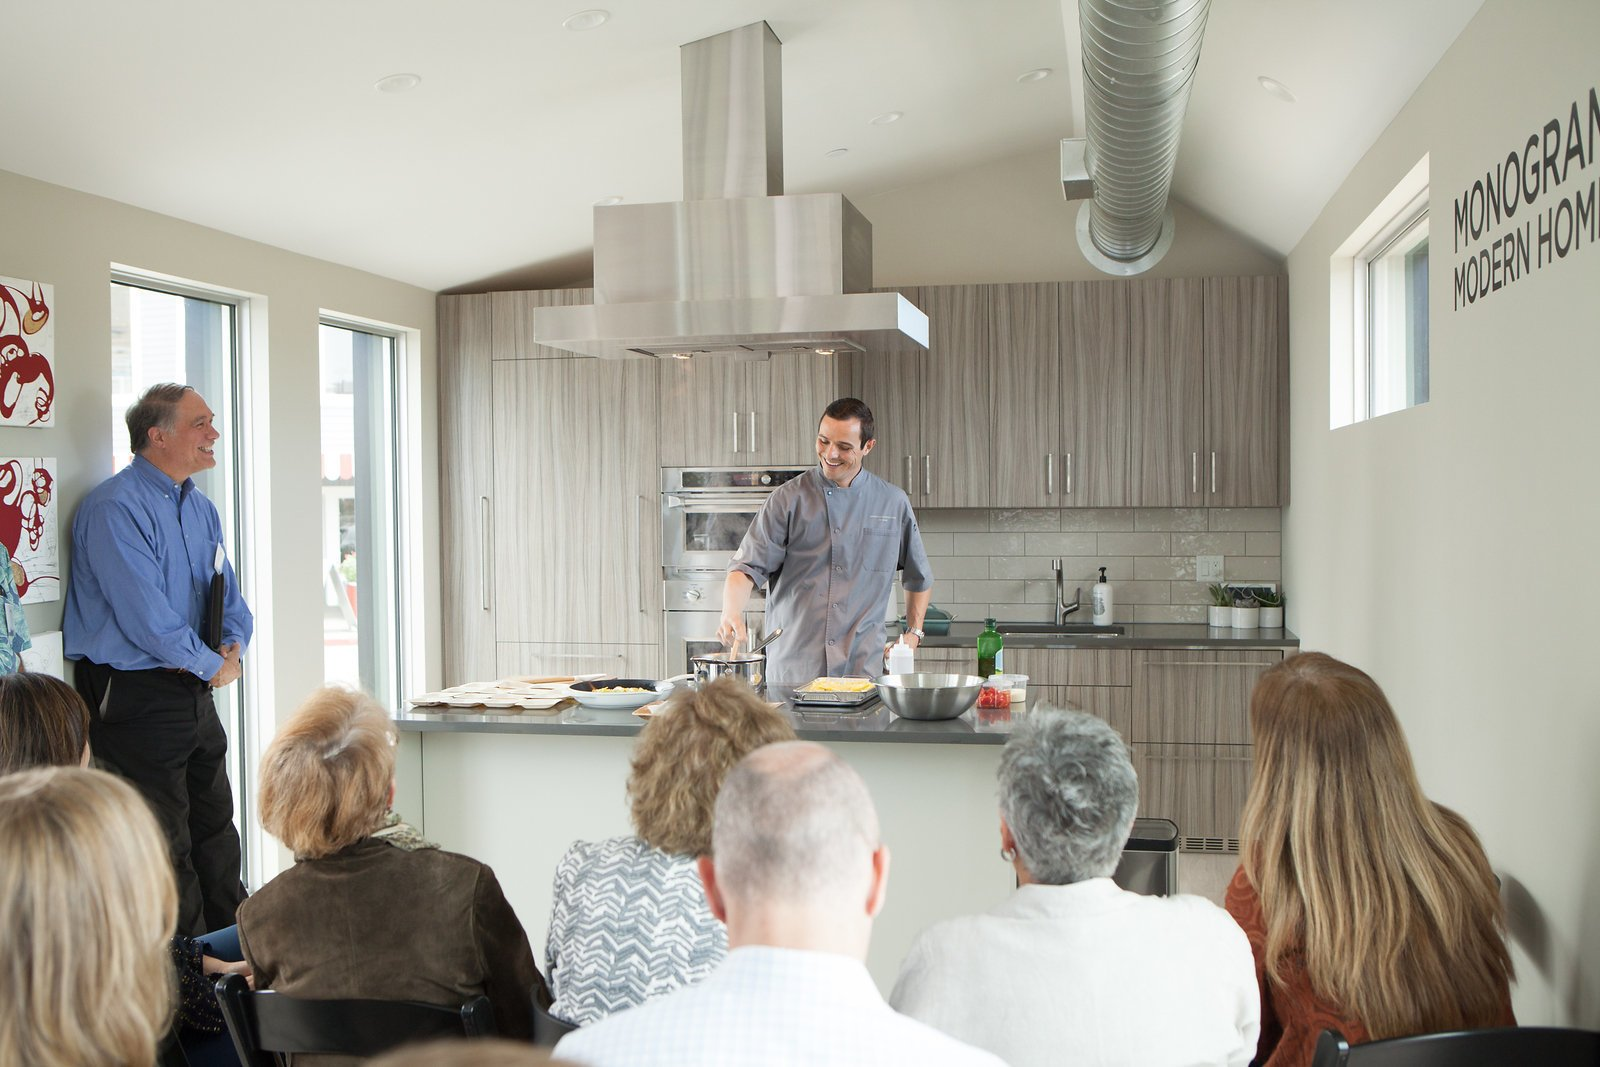 Live product demonstrations led by tour chef Jon provided a way for visitors to learn about Monogram's offerings in a relaxed, organic environment. Monogram Modern Home Tour Takes On the West Coast - Photo 6 of 9